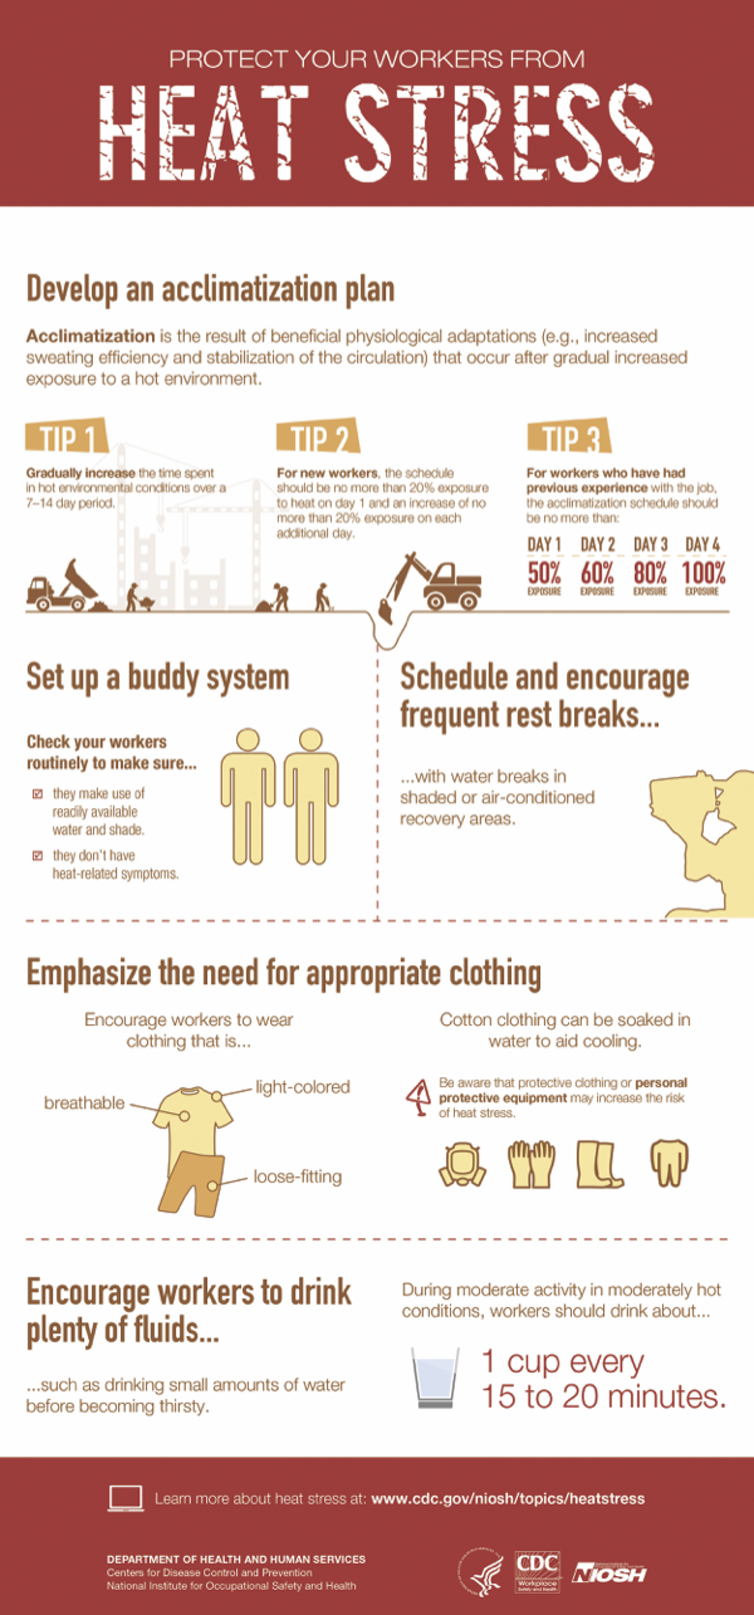 Workplace flyer with tips for acclimatizing to heat.